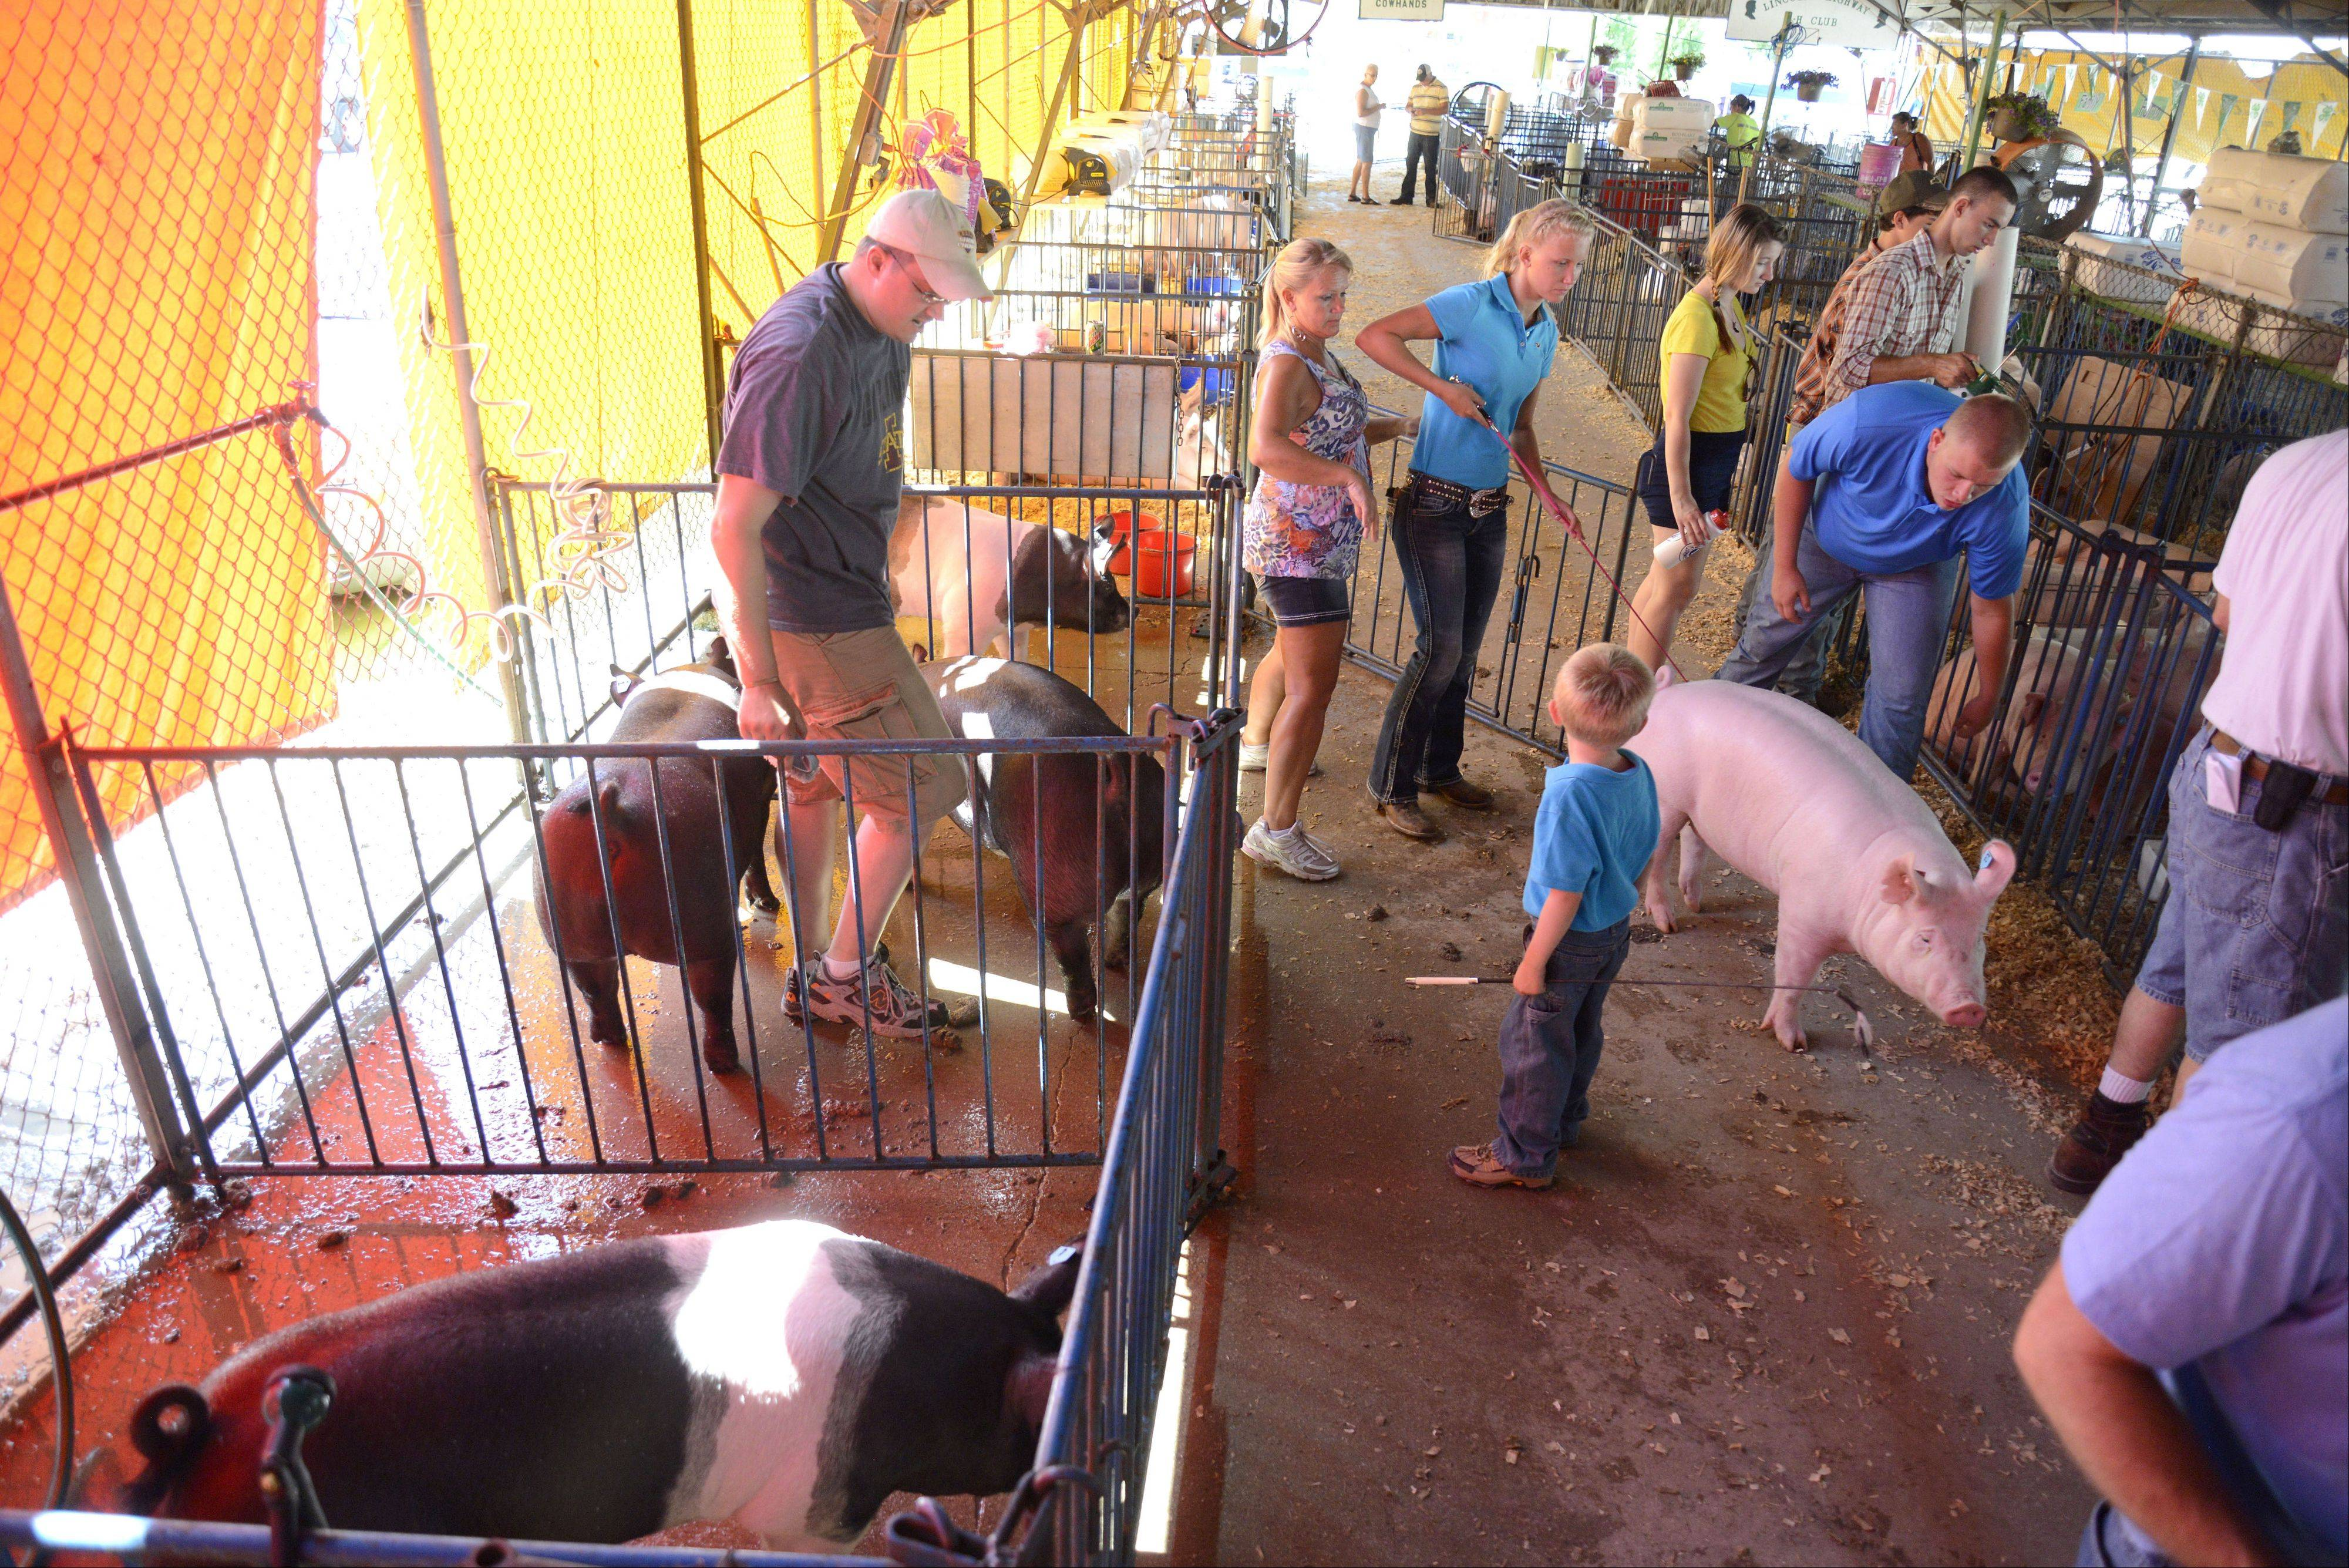 Jeff Anderson preps pigs for showing while his son, Clay, 4, watches Rachel, 16, and Christian Thurwanger, 18, of Sycamore, guide one of their pigs to the show ring Thursday at the Kane County Fair in St. Charles. The Andersons are showing for the Big Rock Cowhands 4-H club, and the Thurwangers are showing independently.